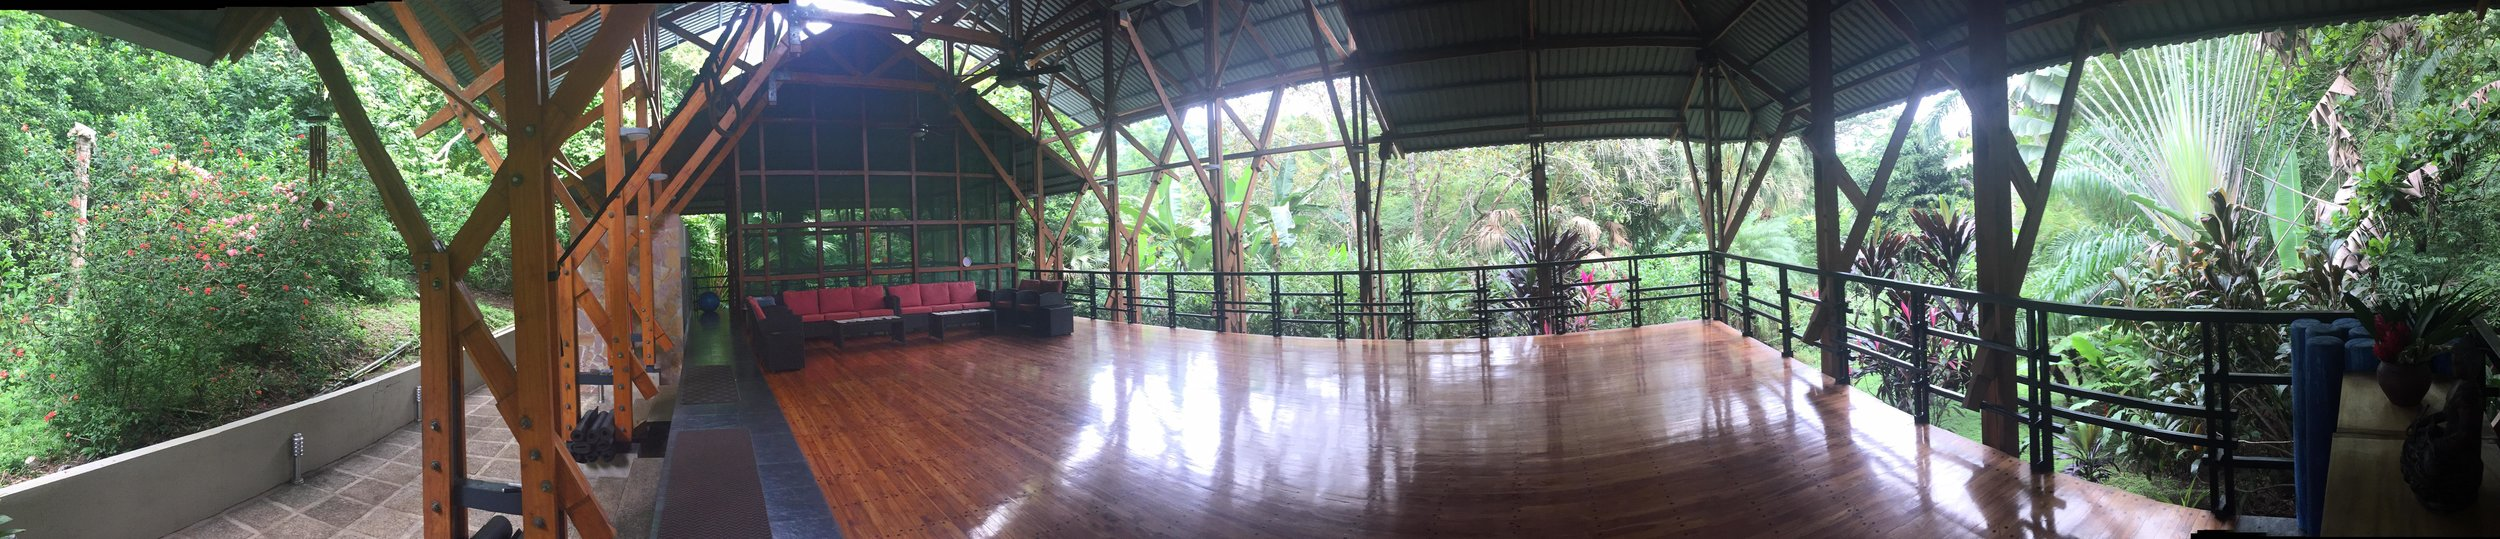 Panoramic view of yoga pagoda in the jungle of Costa Rica